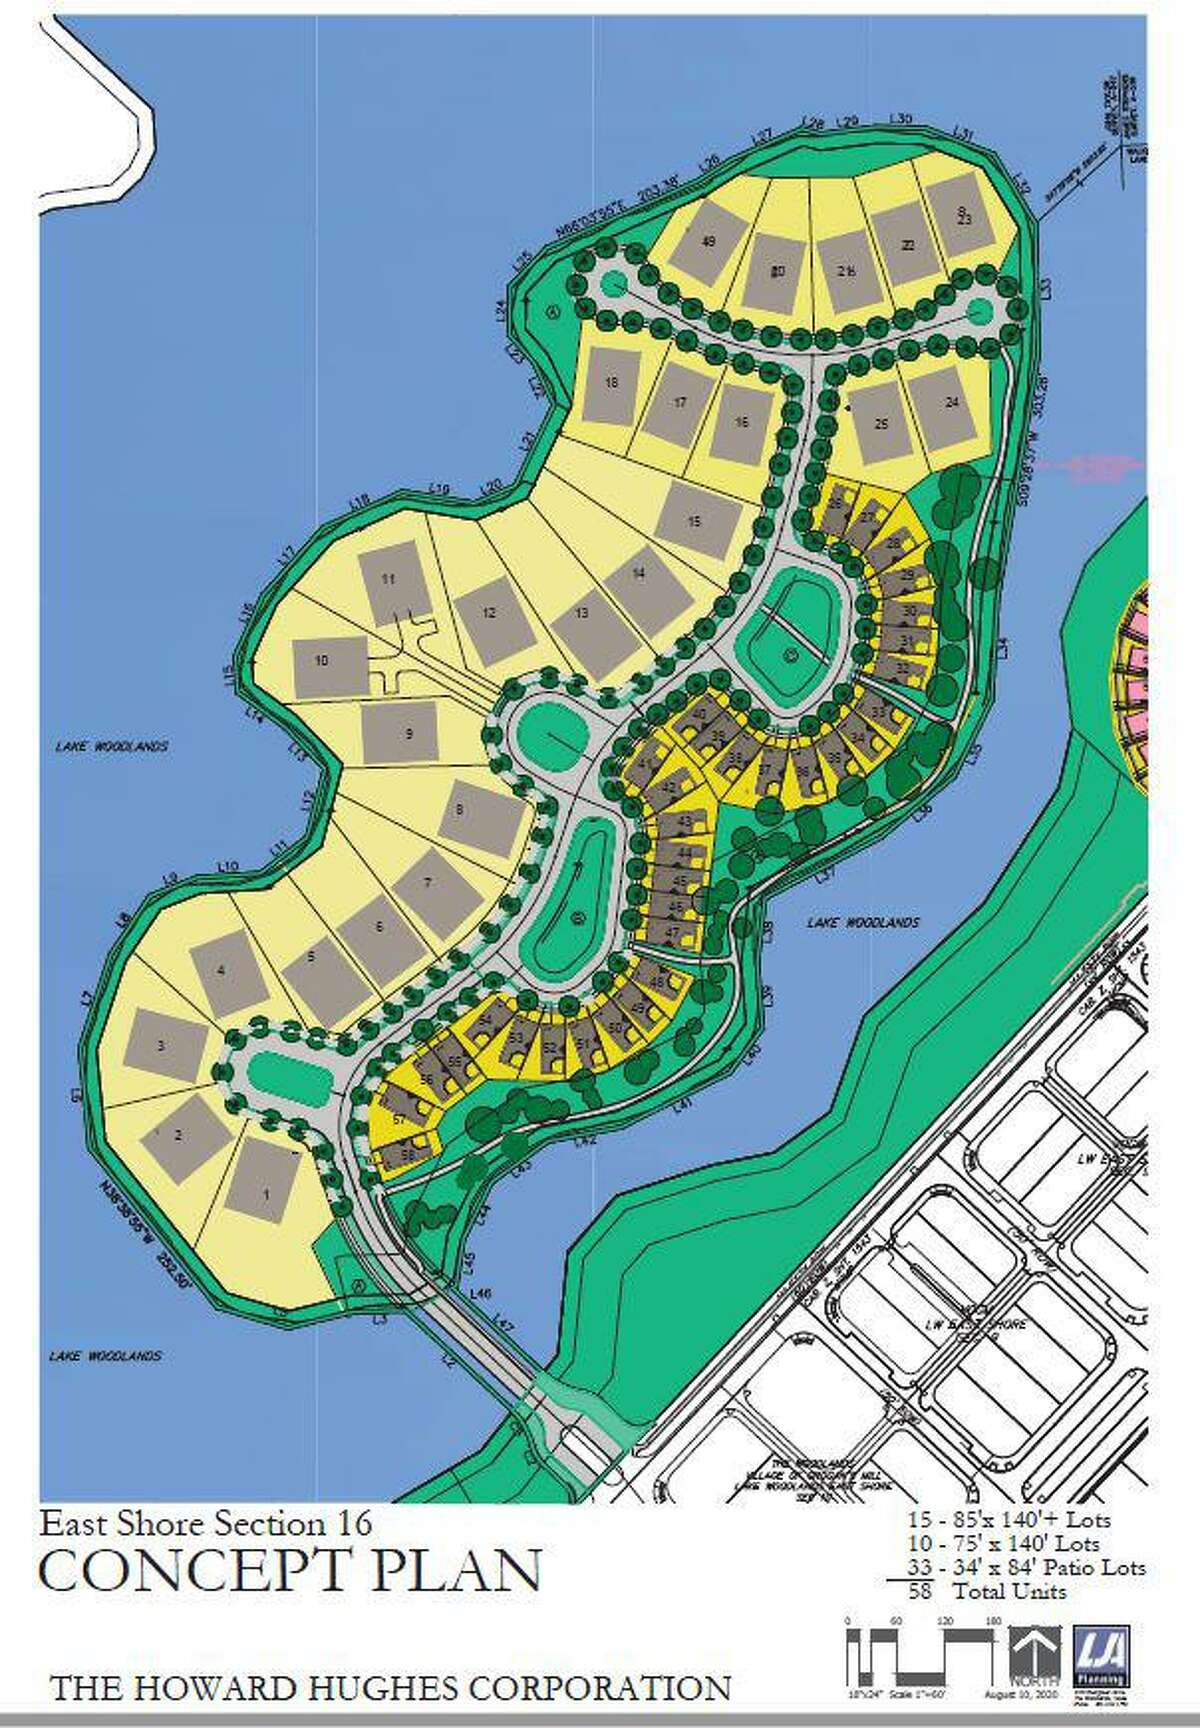 Controversy erupted in September in The Woodlands after plans from the Howard Hughes Corp. were unveiled detailing a proposed new development on Mitchell Island in the East Shore area of the township. The island, currently empty, was set to have 19 mega mansions built on it. Now, Howard Hughes officials want to build 58 different homes. Those plans have now been canceled after a